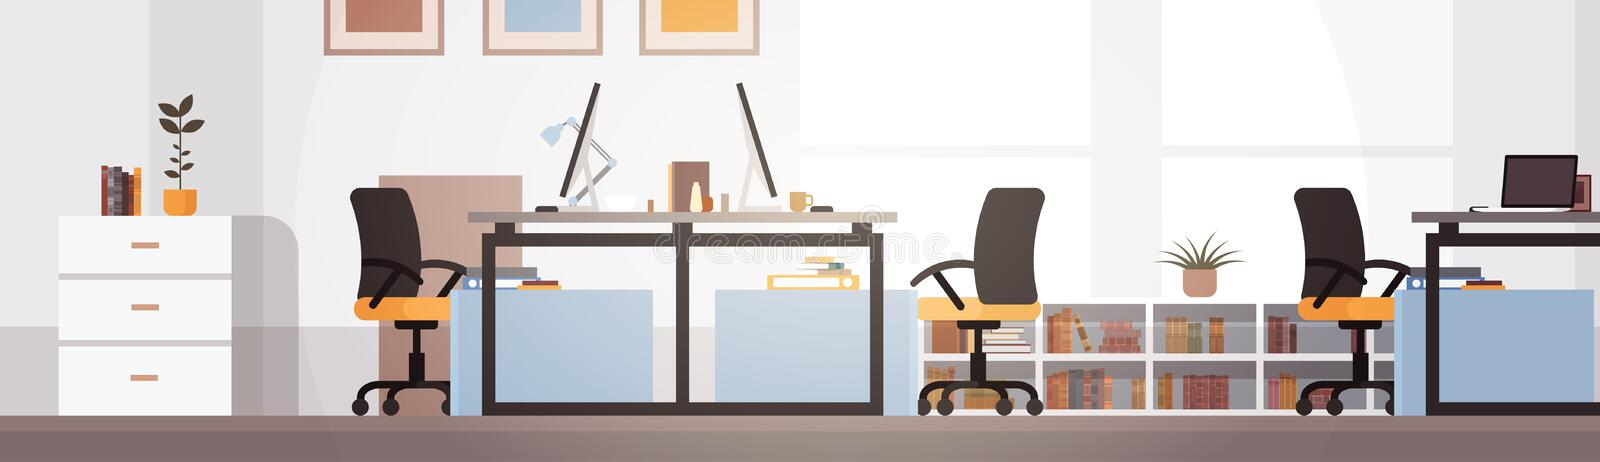 Creative Office Co-working Center University Campus Modern Workplace. Flat Vector Illustration vector illustration